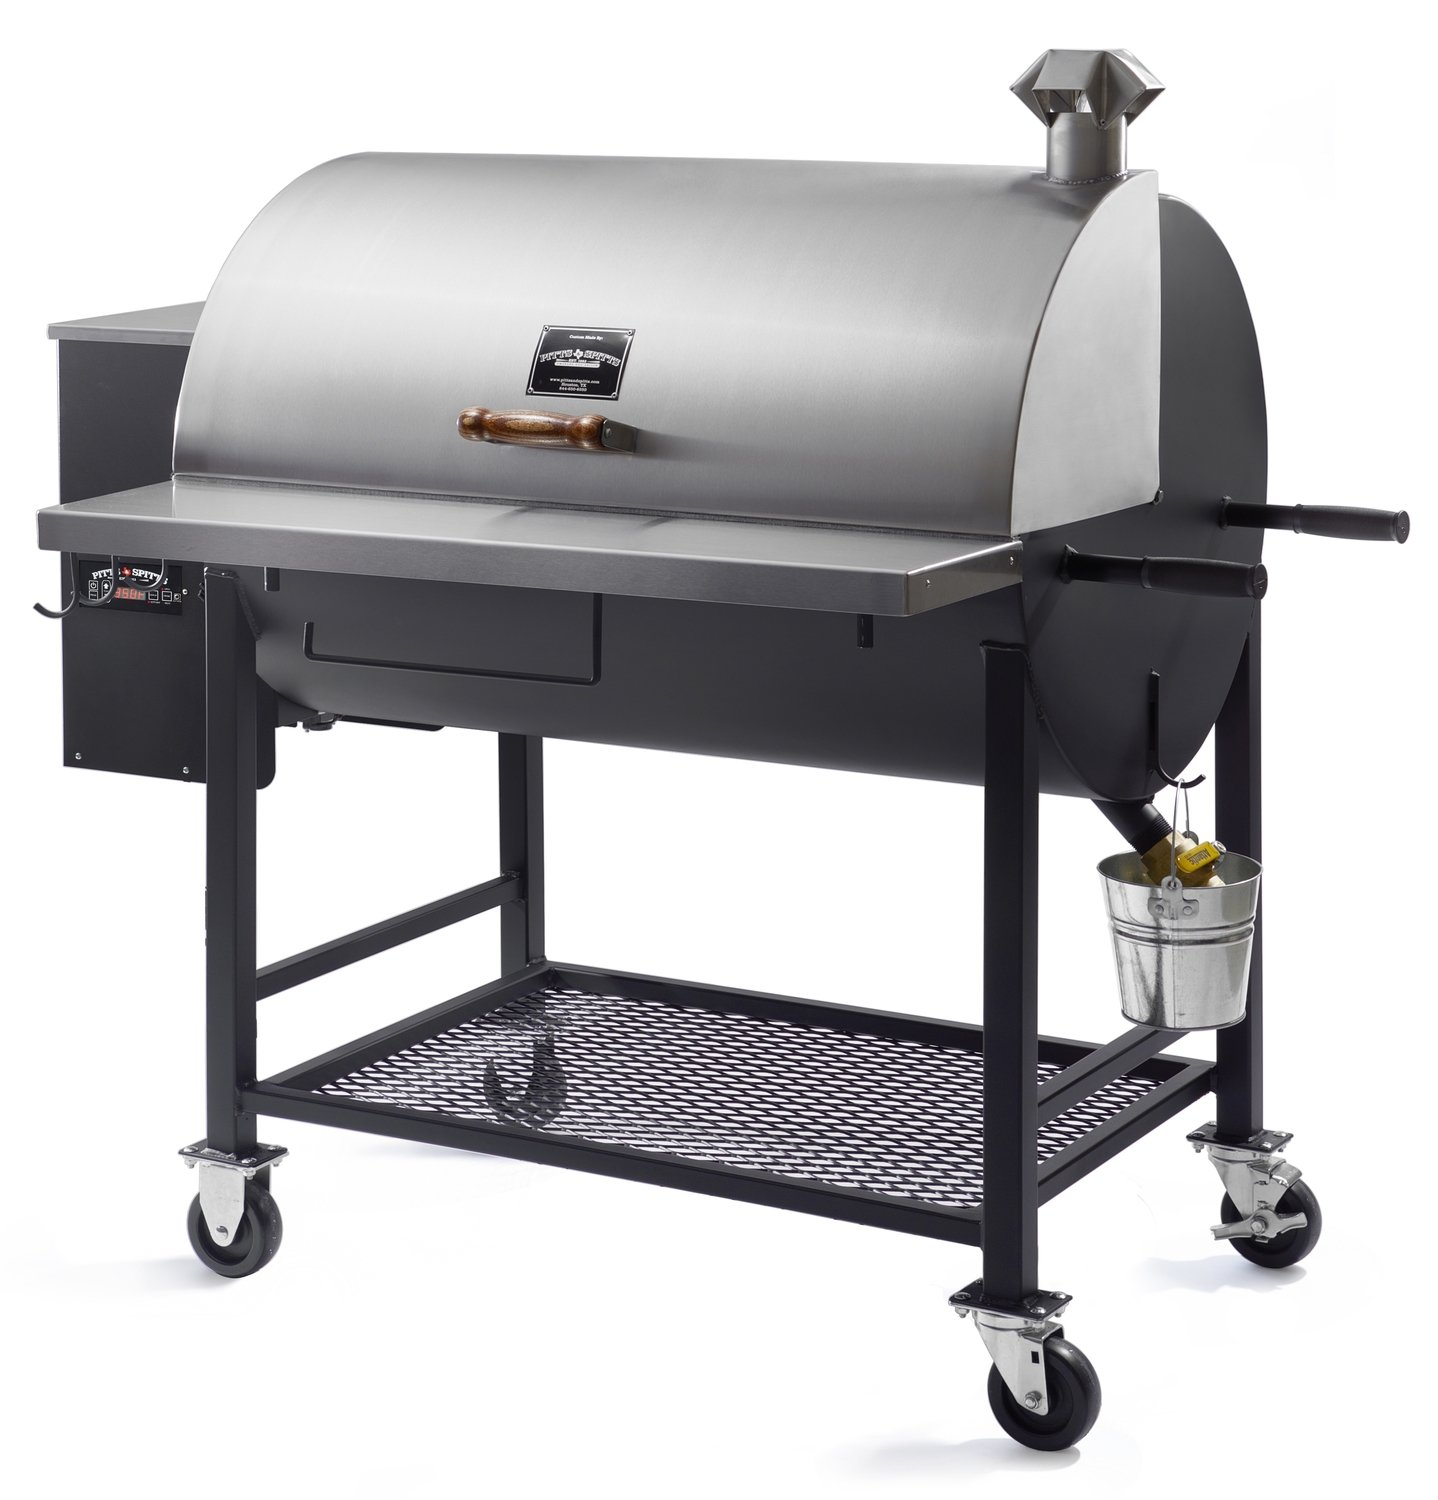 Pitts & Spitts Maverick 1250 Wood Pellet Grill